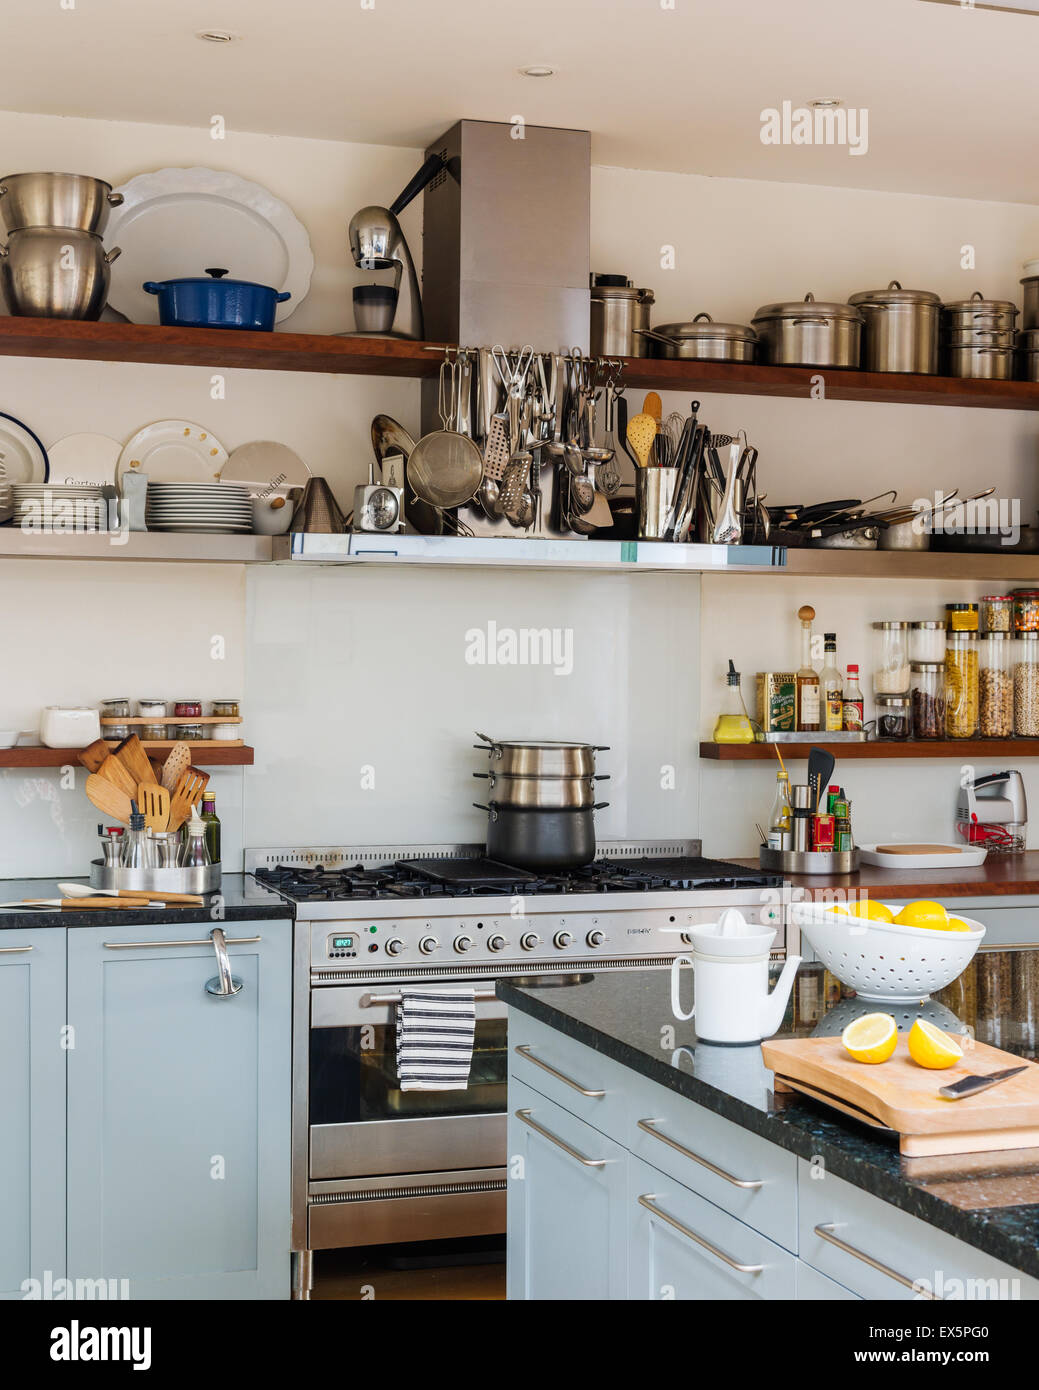 Open Shelving In Bright Airy Kitchen With Range Cooker And Granite